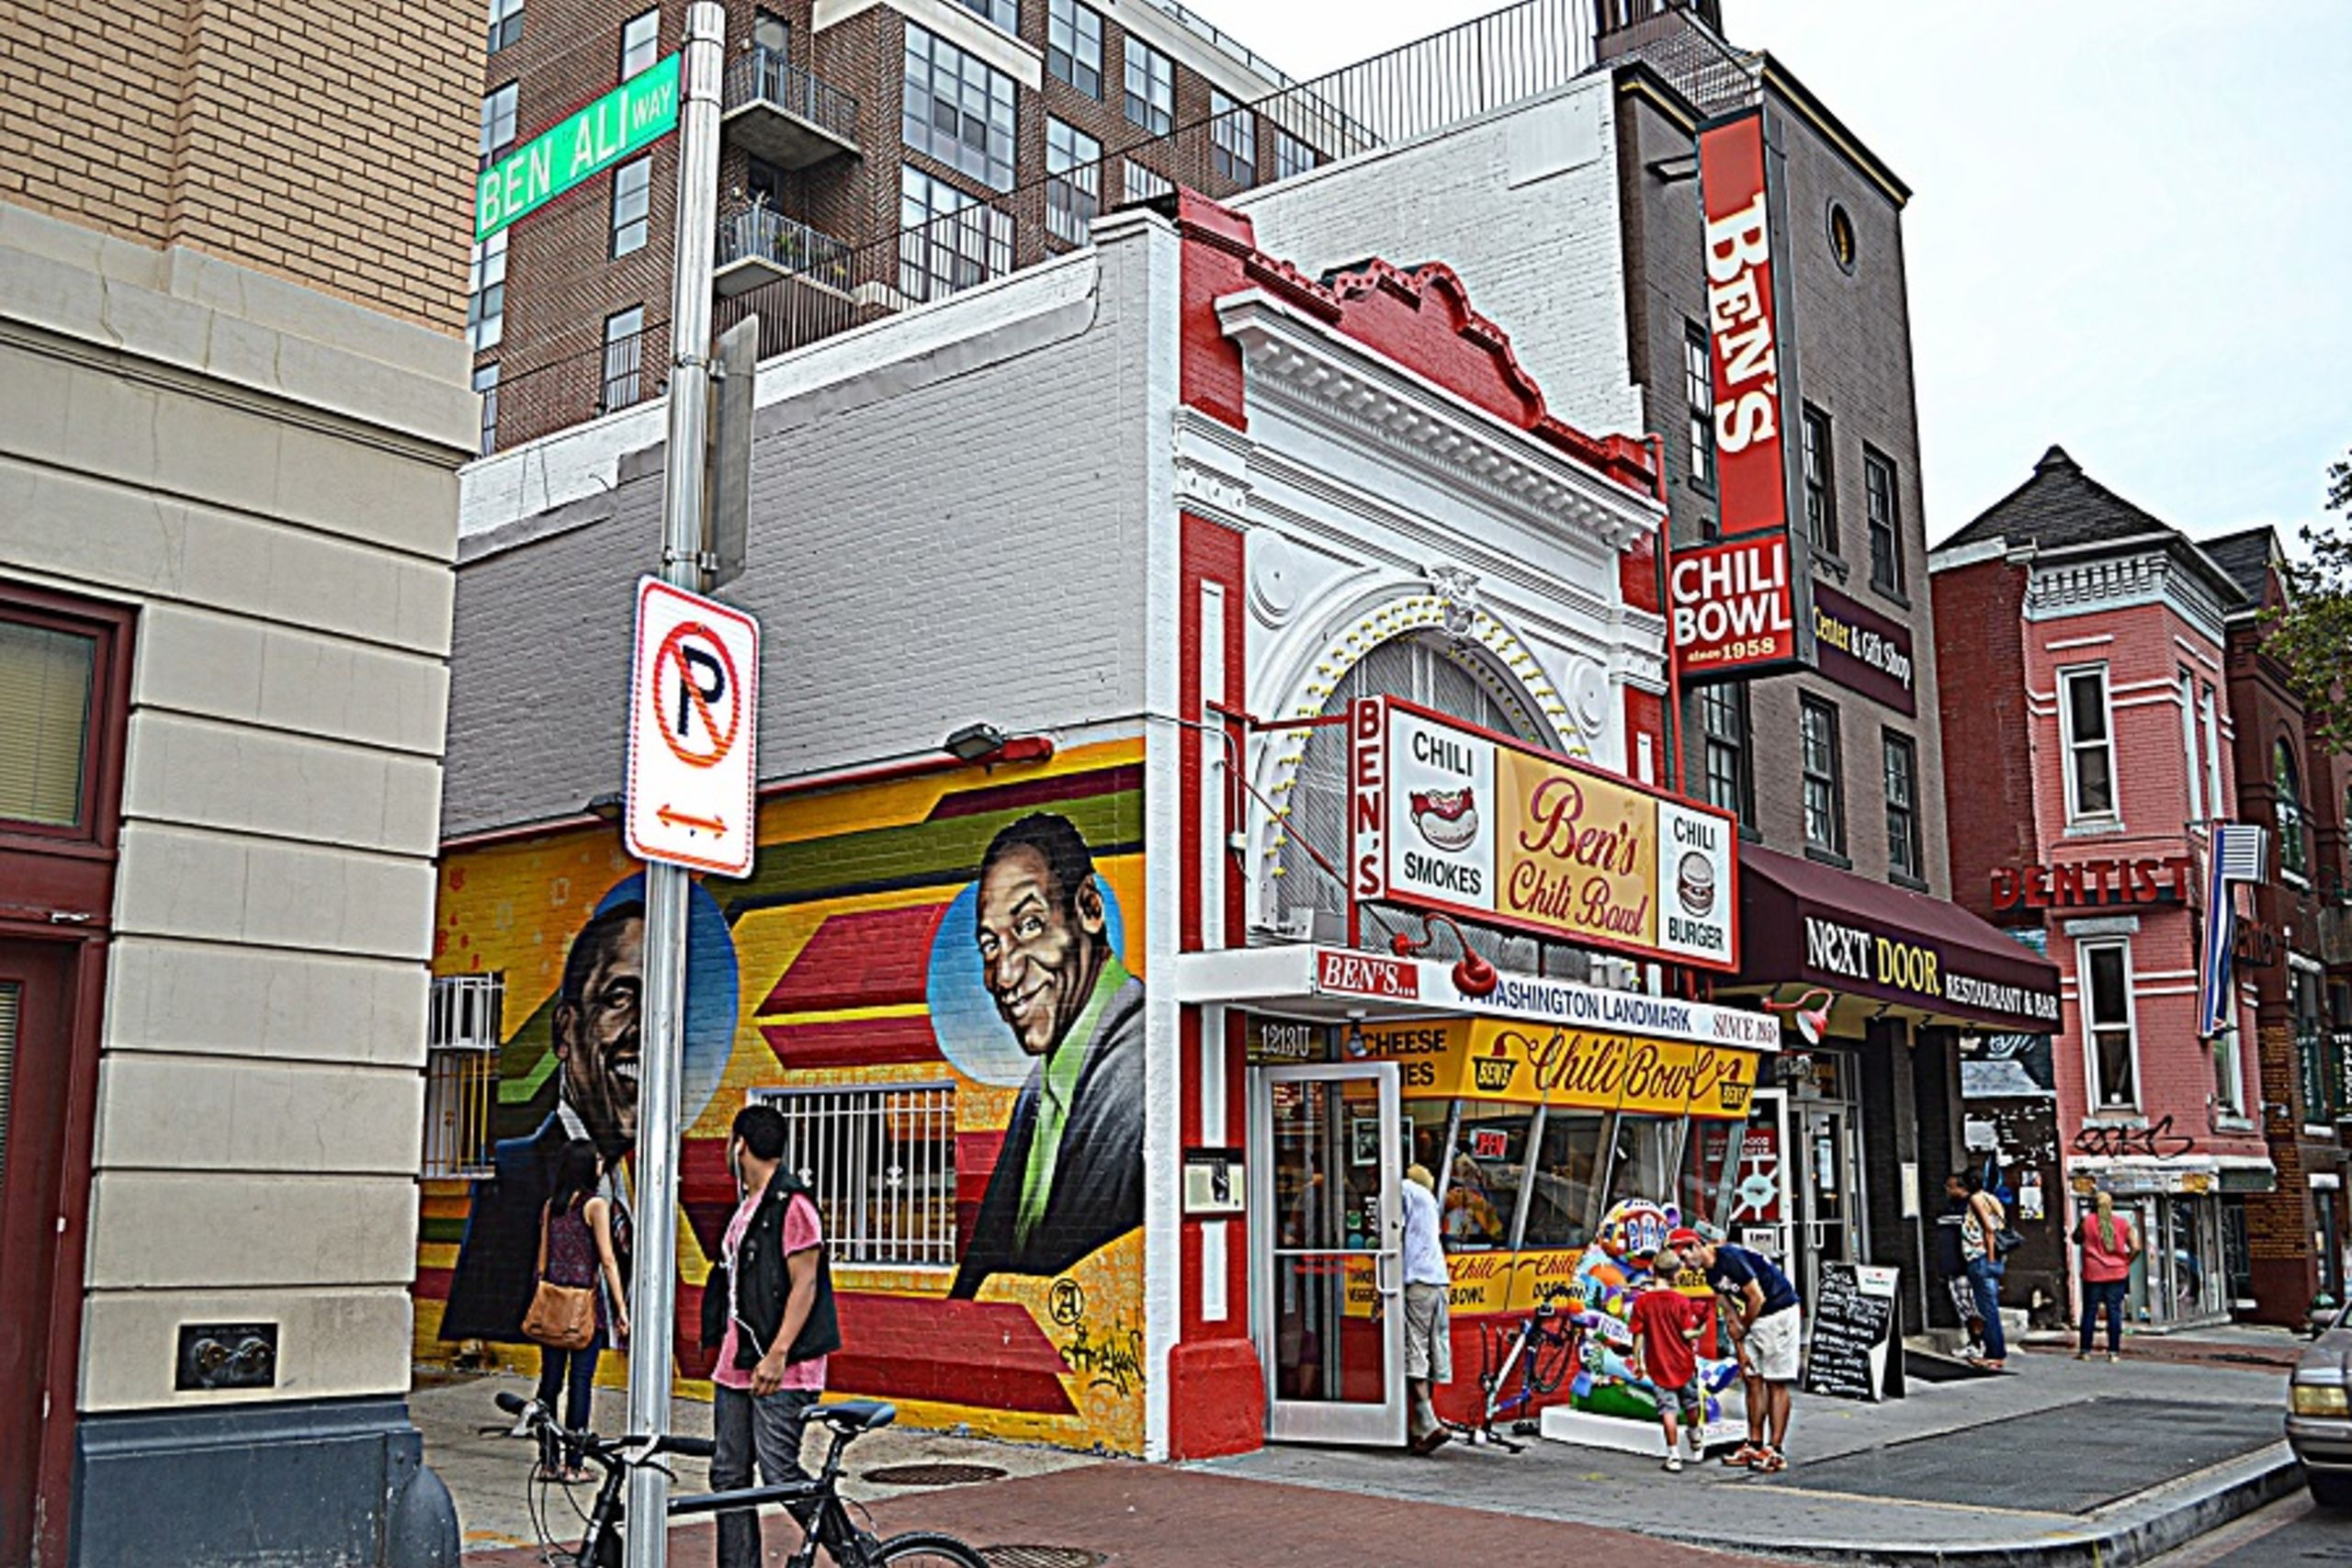 Historic Ben's Chili Bowl - U St. Location